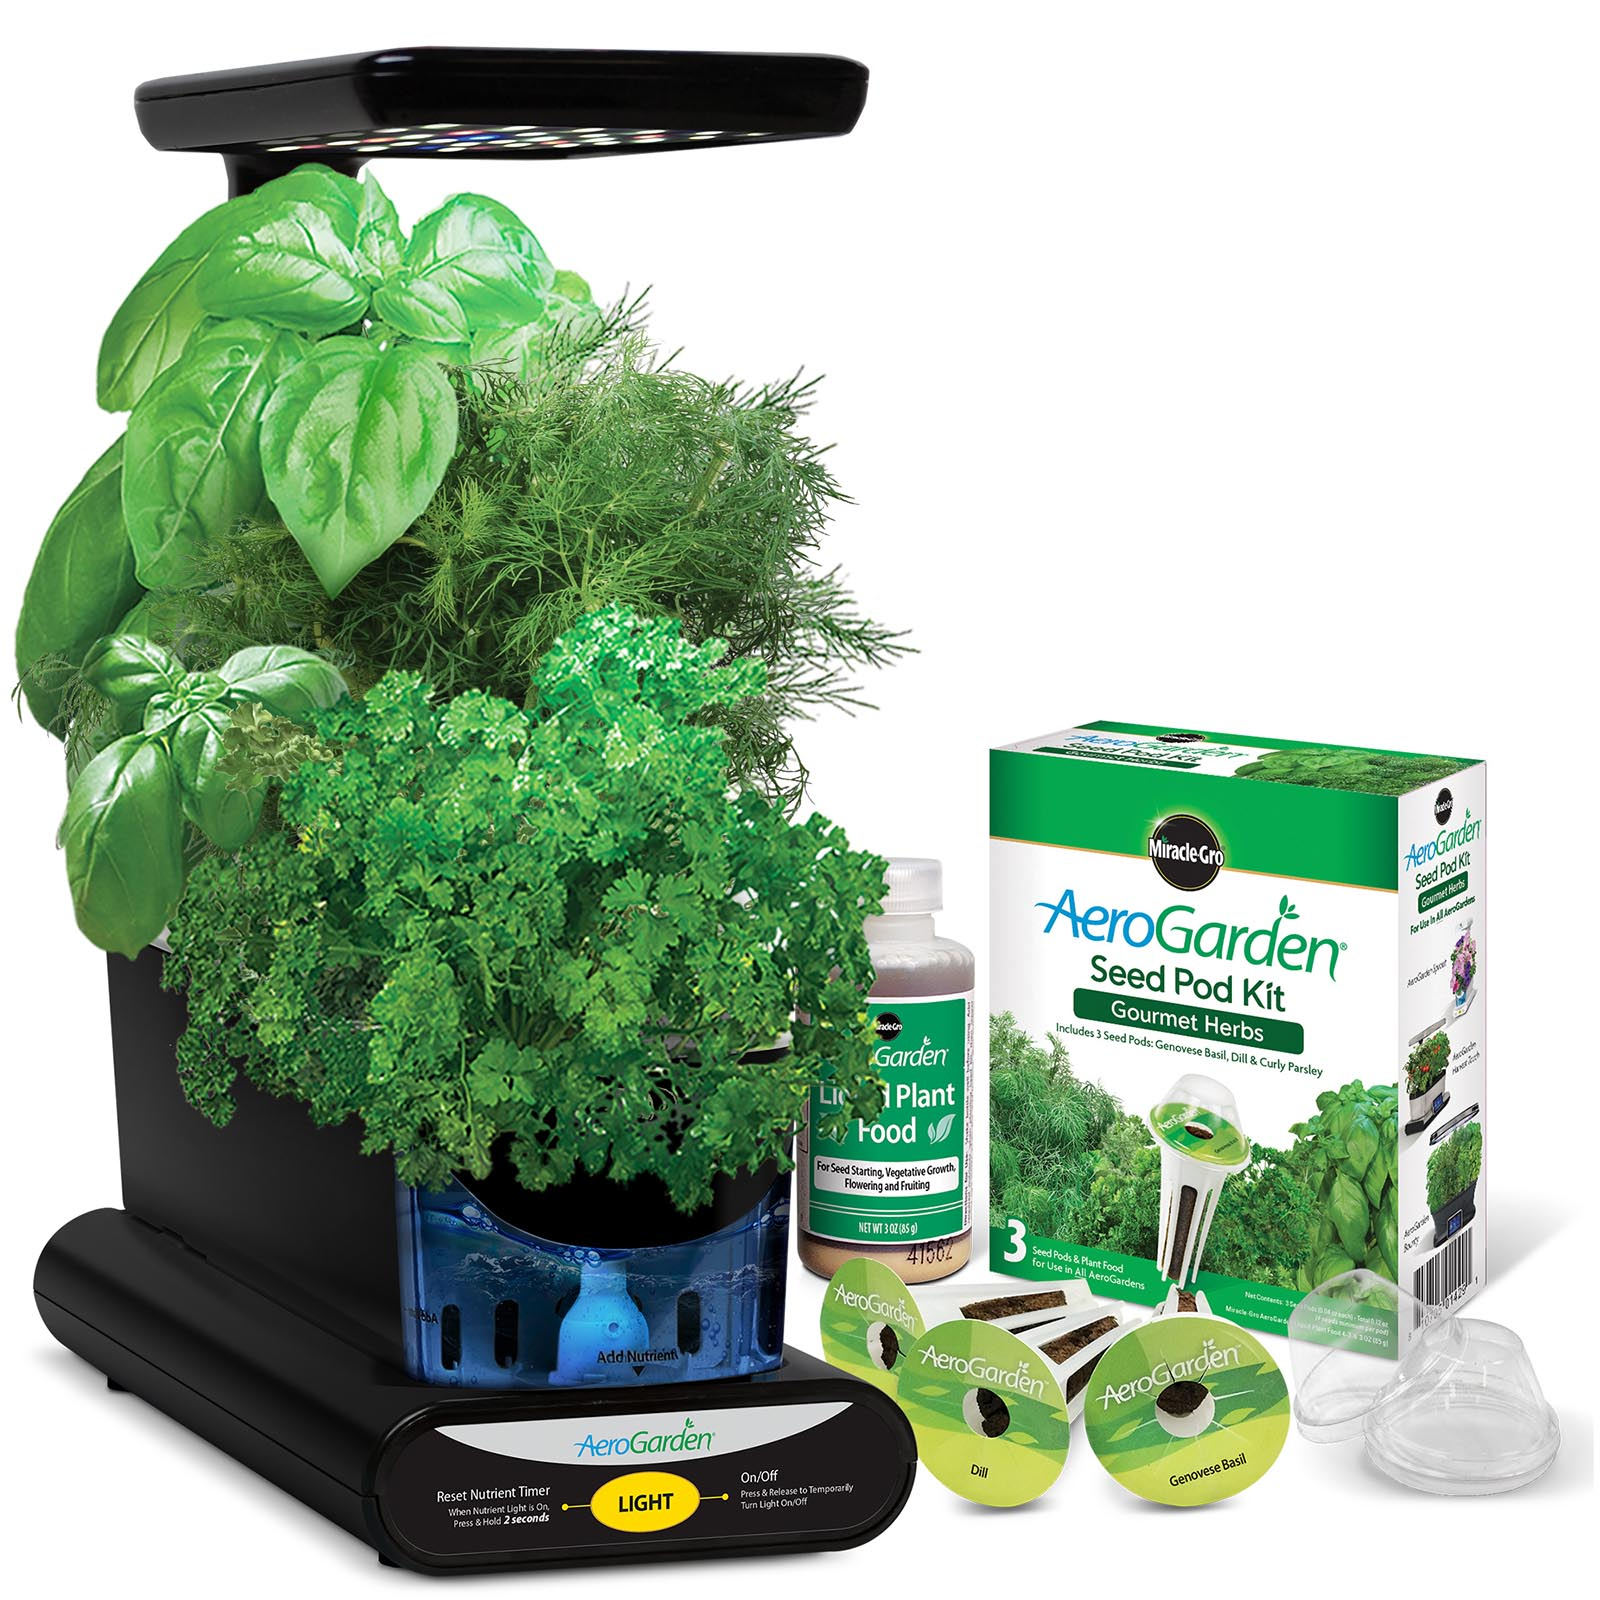 Miracle-Gro AeroGarden 3-Pod Indoor Sprout LED Plus with Herb Seed Kit   AERO606